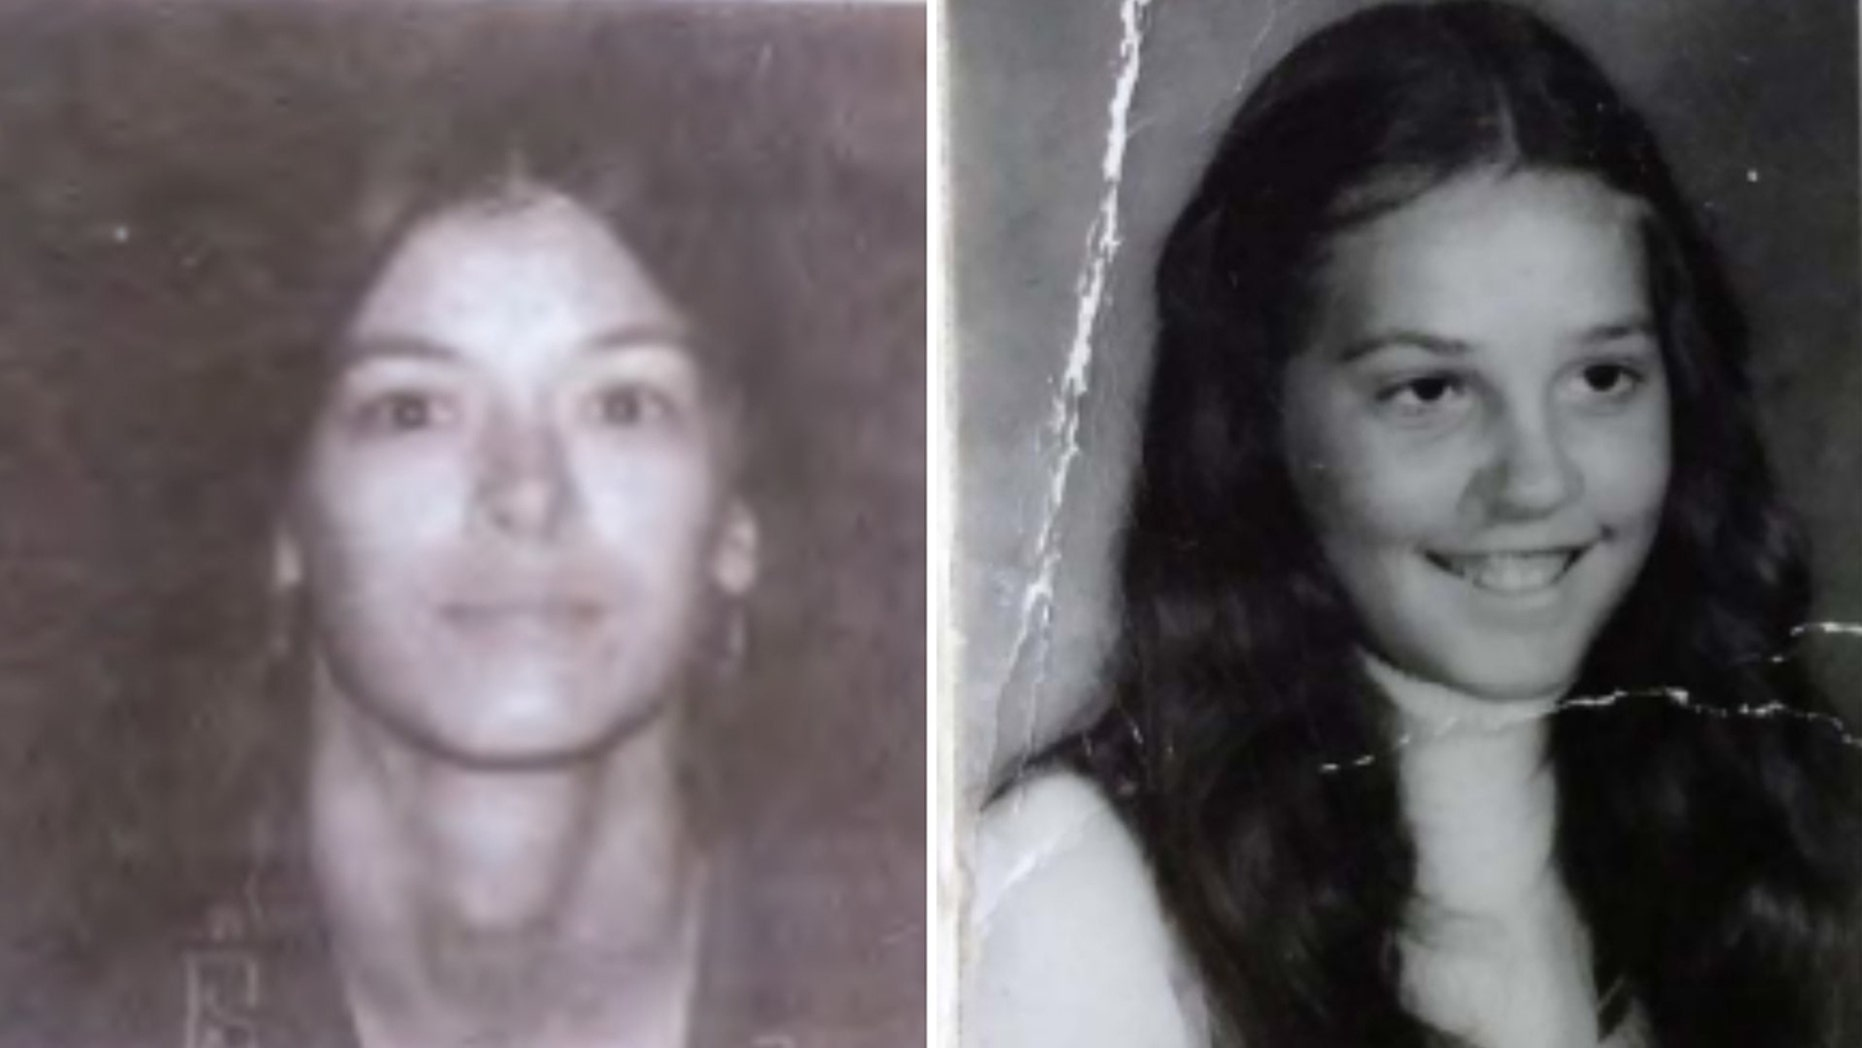 Brynn Rainey (left) and Carol Andersen (right) were killed two years apart in South Lake Tahoe, California.